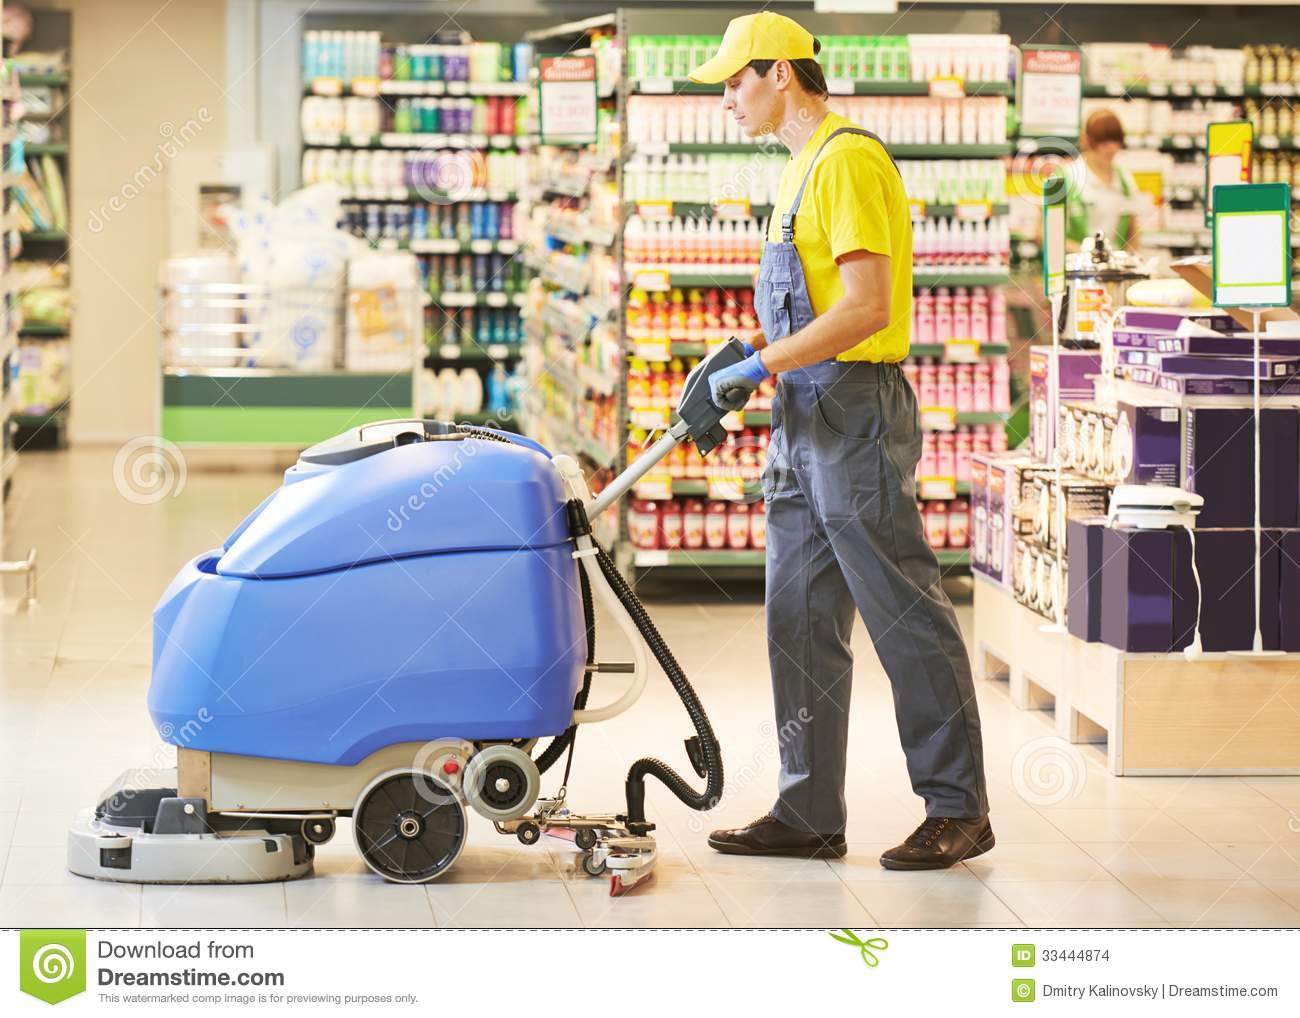 worker cleaning store floor machine royalty stock images worker cleaning store floor machine stock images